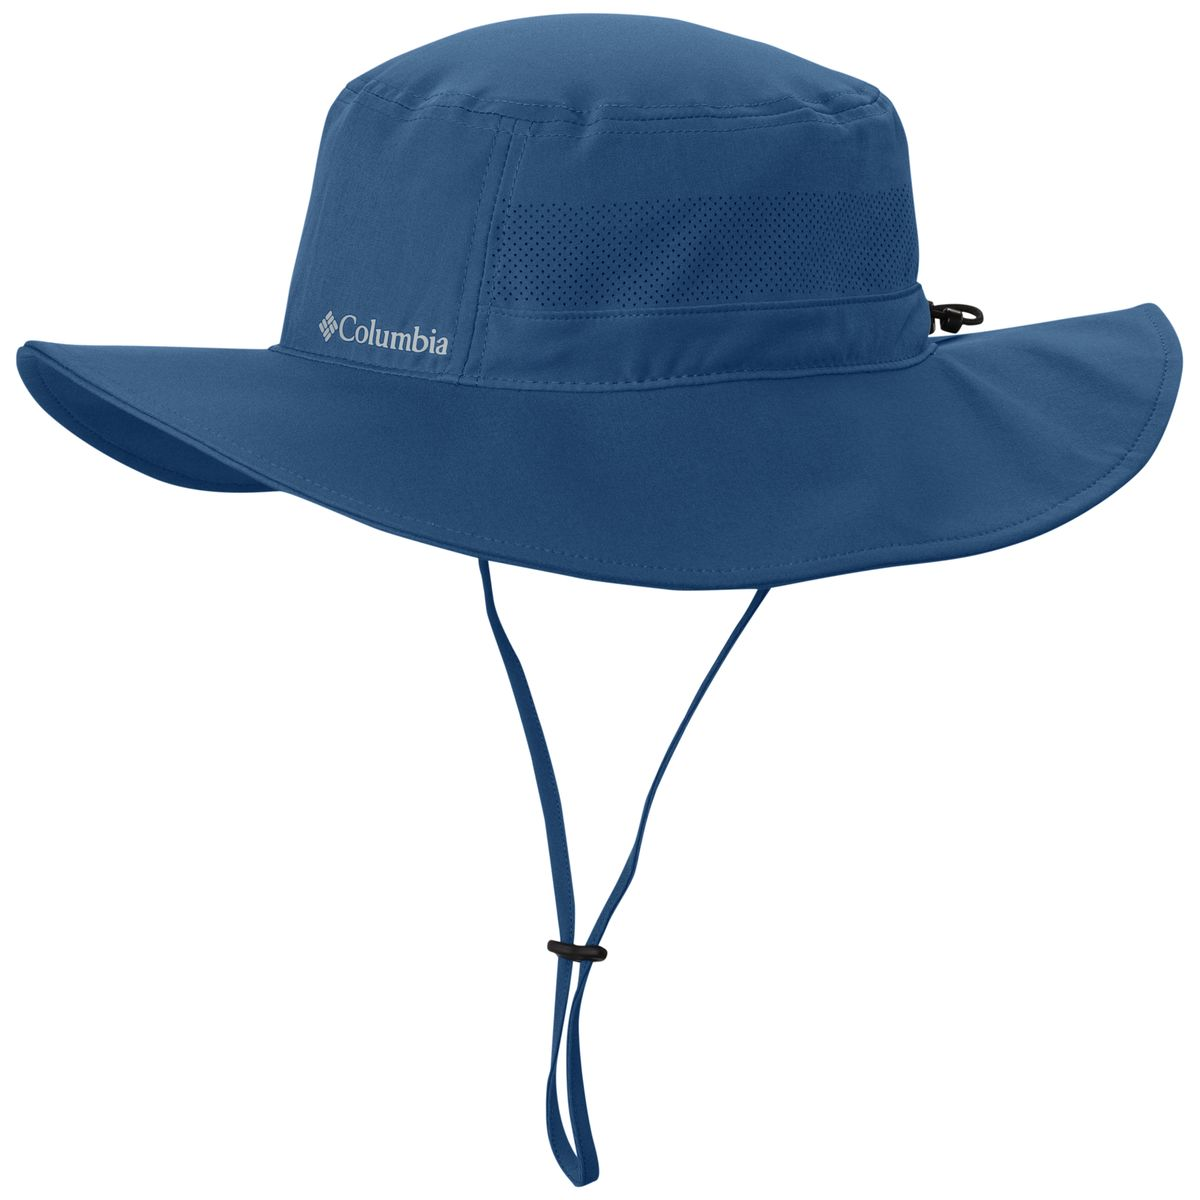 Columbia Booney Hat: Columbia Omni Shade Silver Ridge Booney Reviews